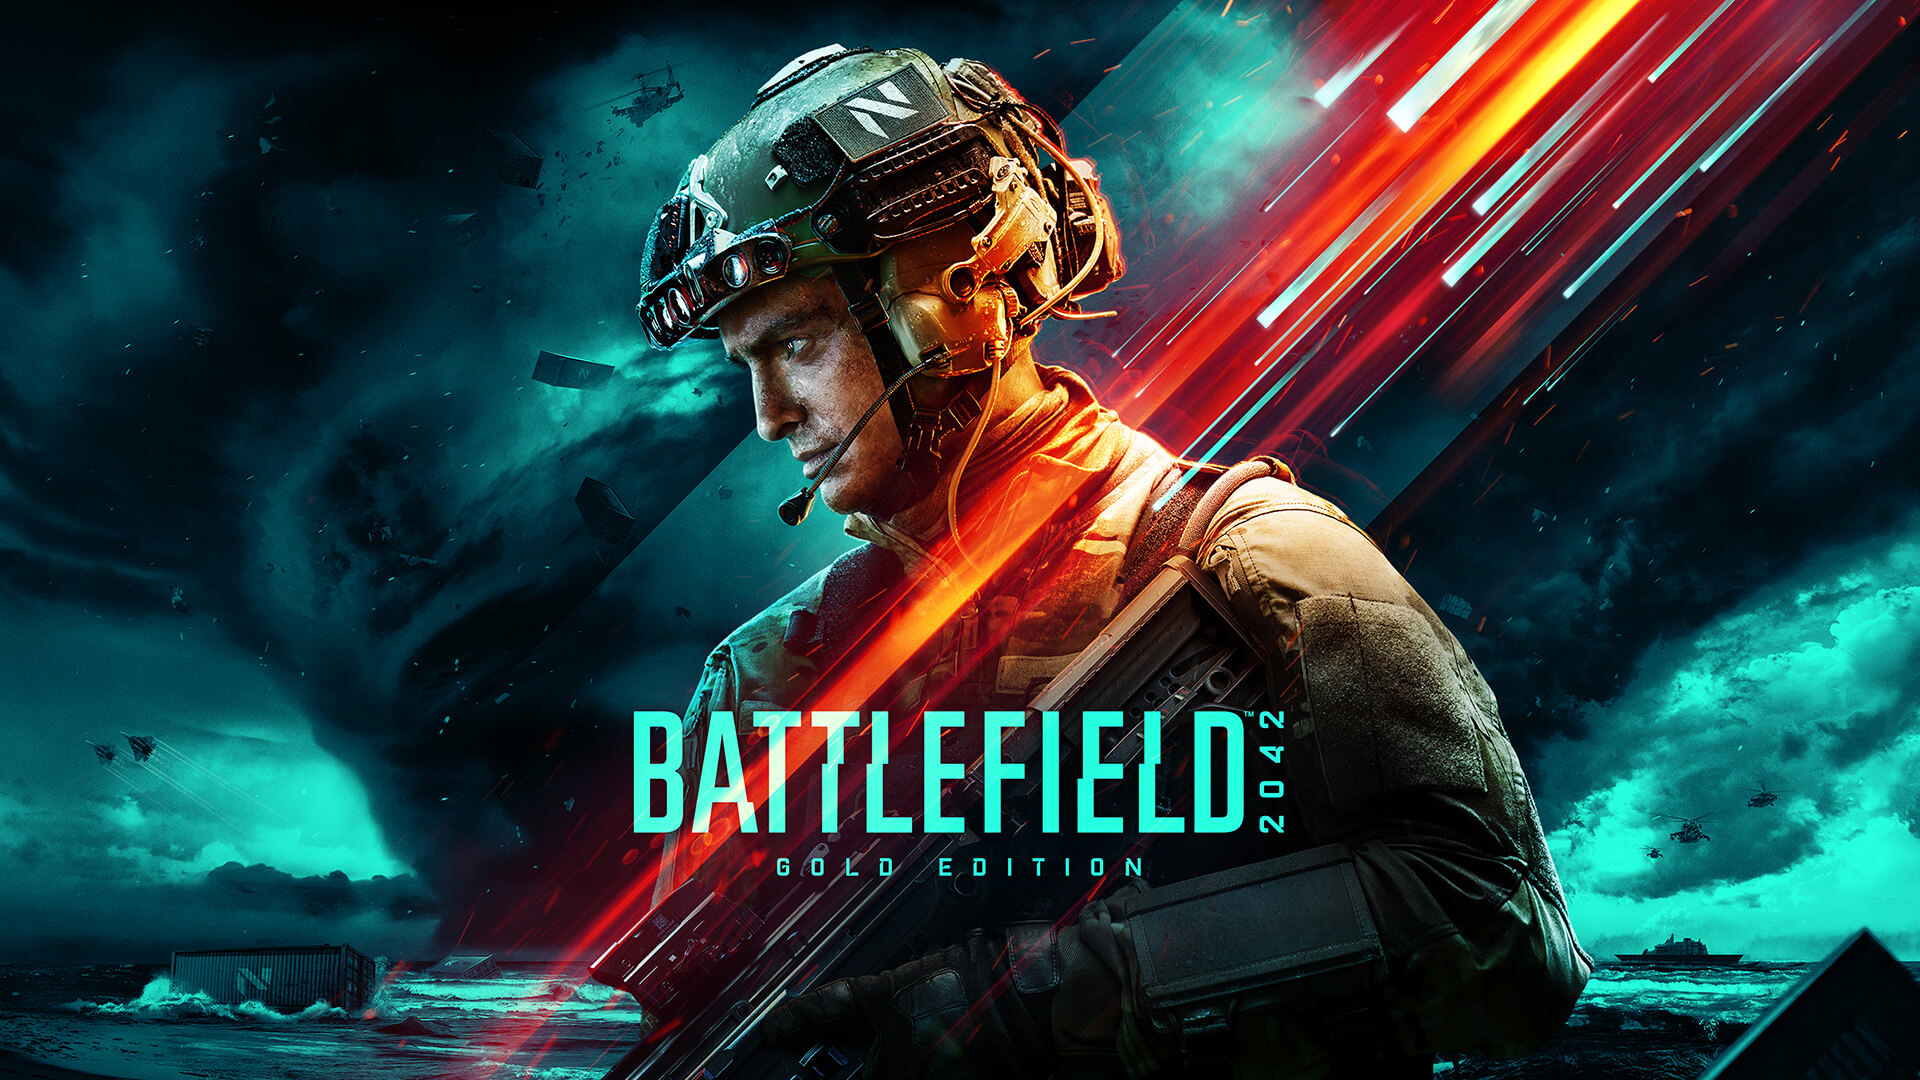 egs-battlefield2042goldedition-dice-editions-g1a-00-1920x1080-8c5f388aac93